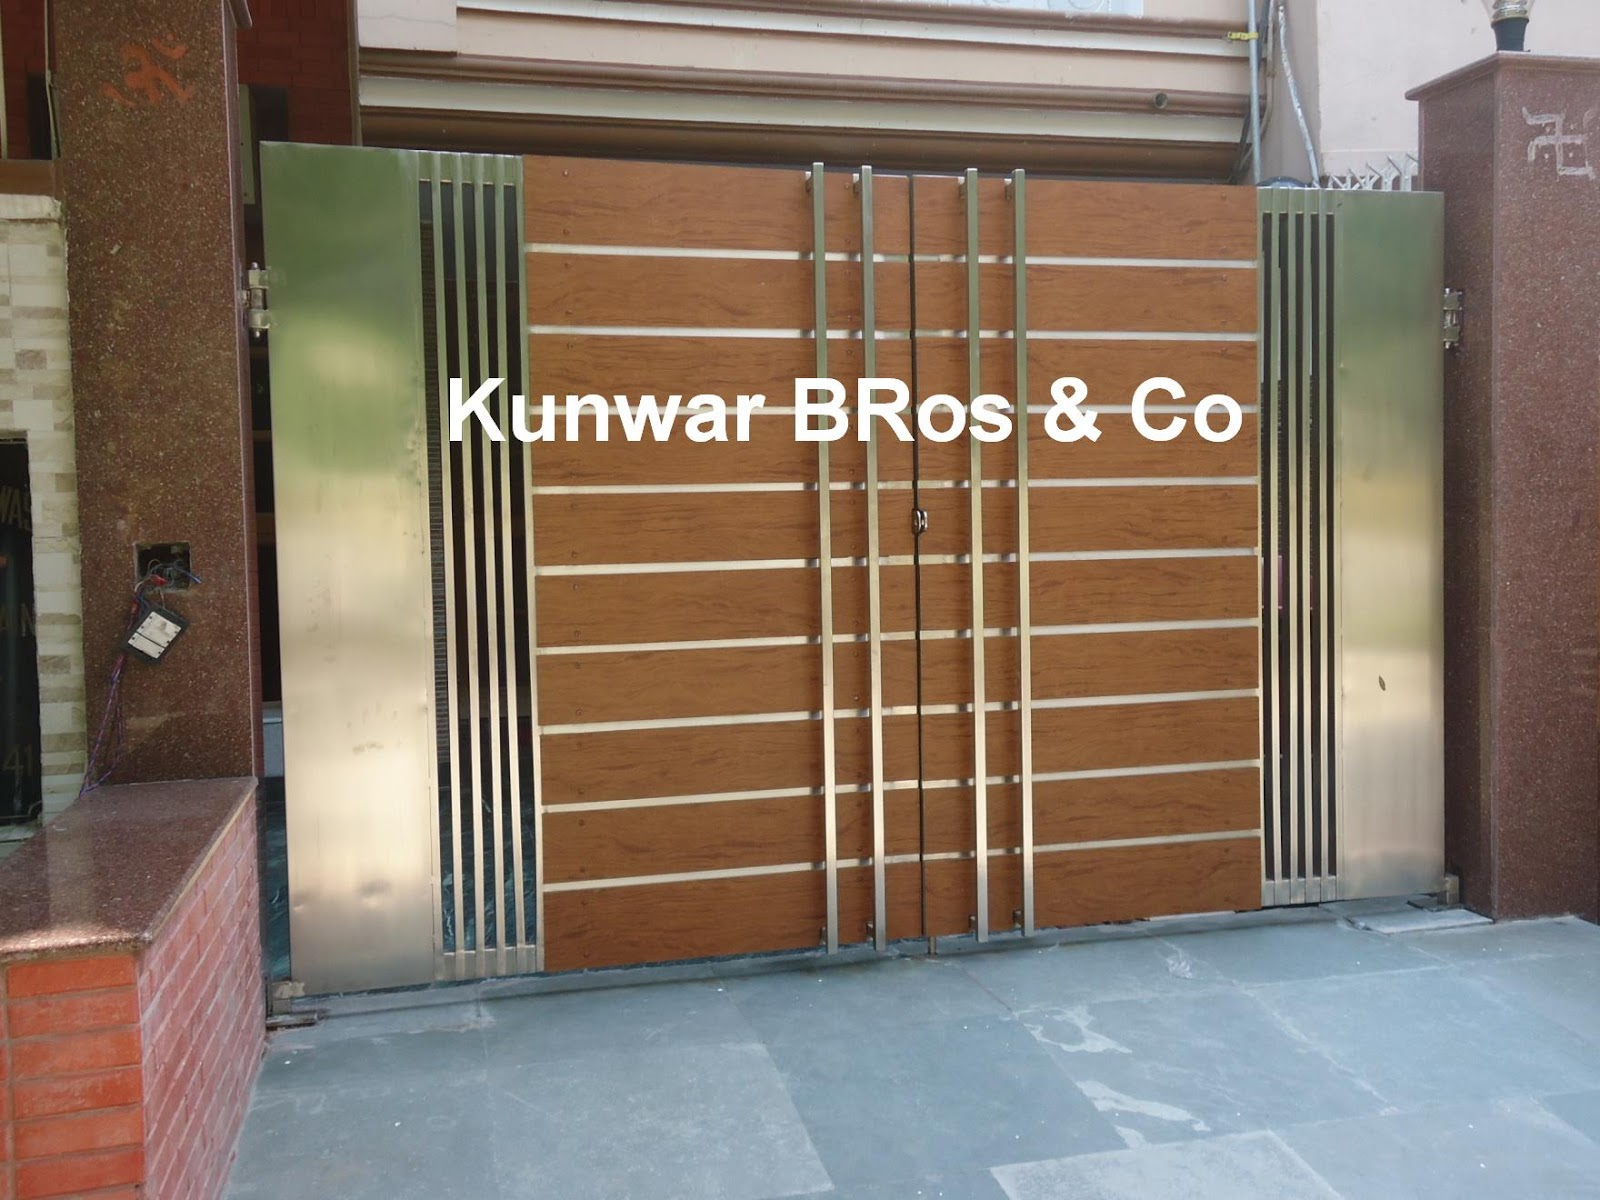 Kunwar bros co stainless steel main gate - Wooden main gate design for home ...